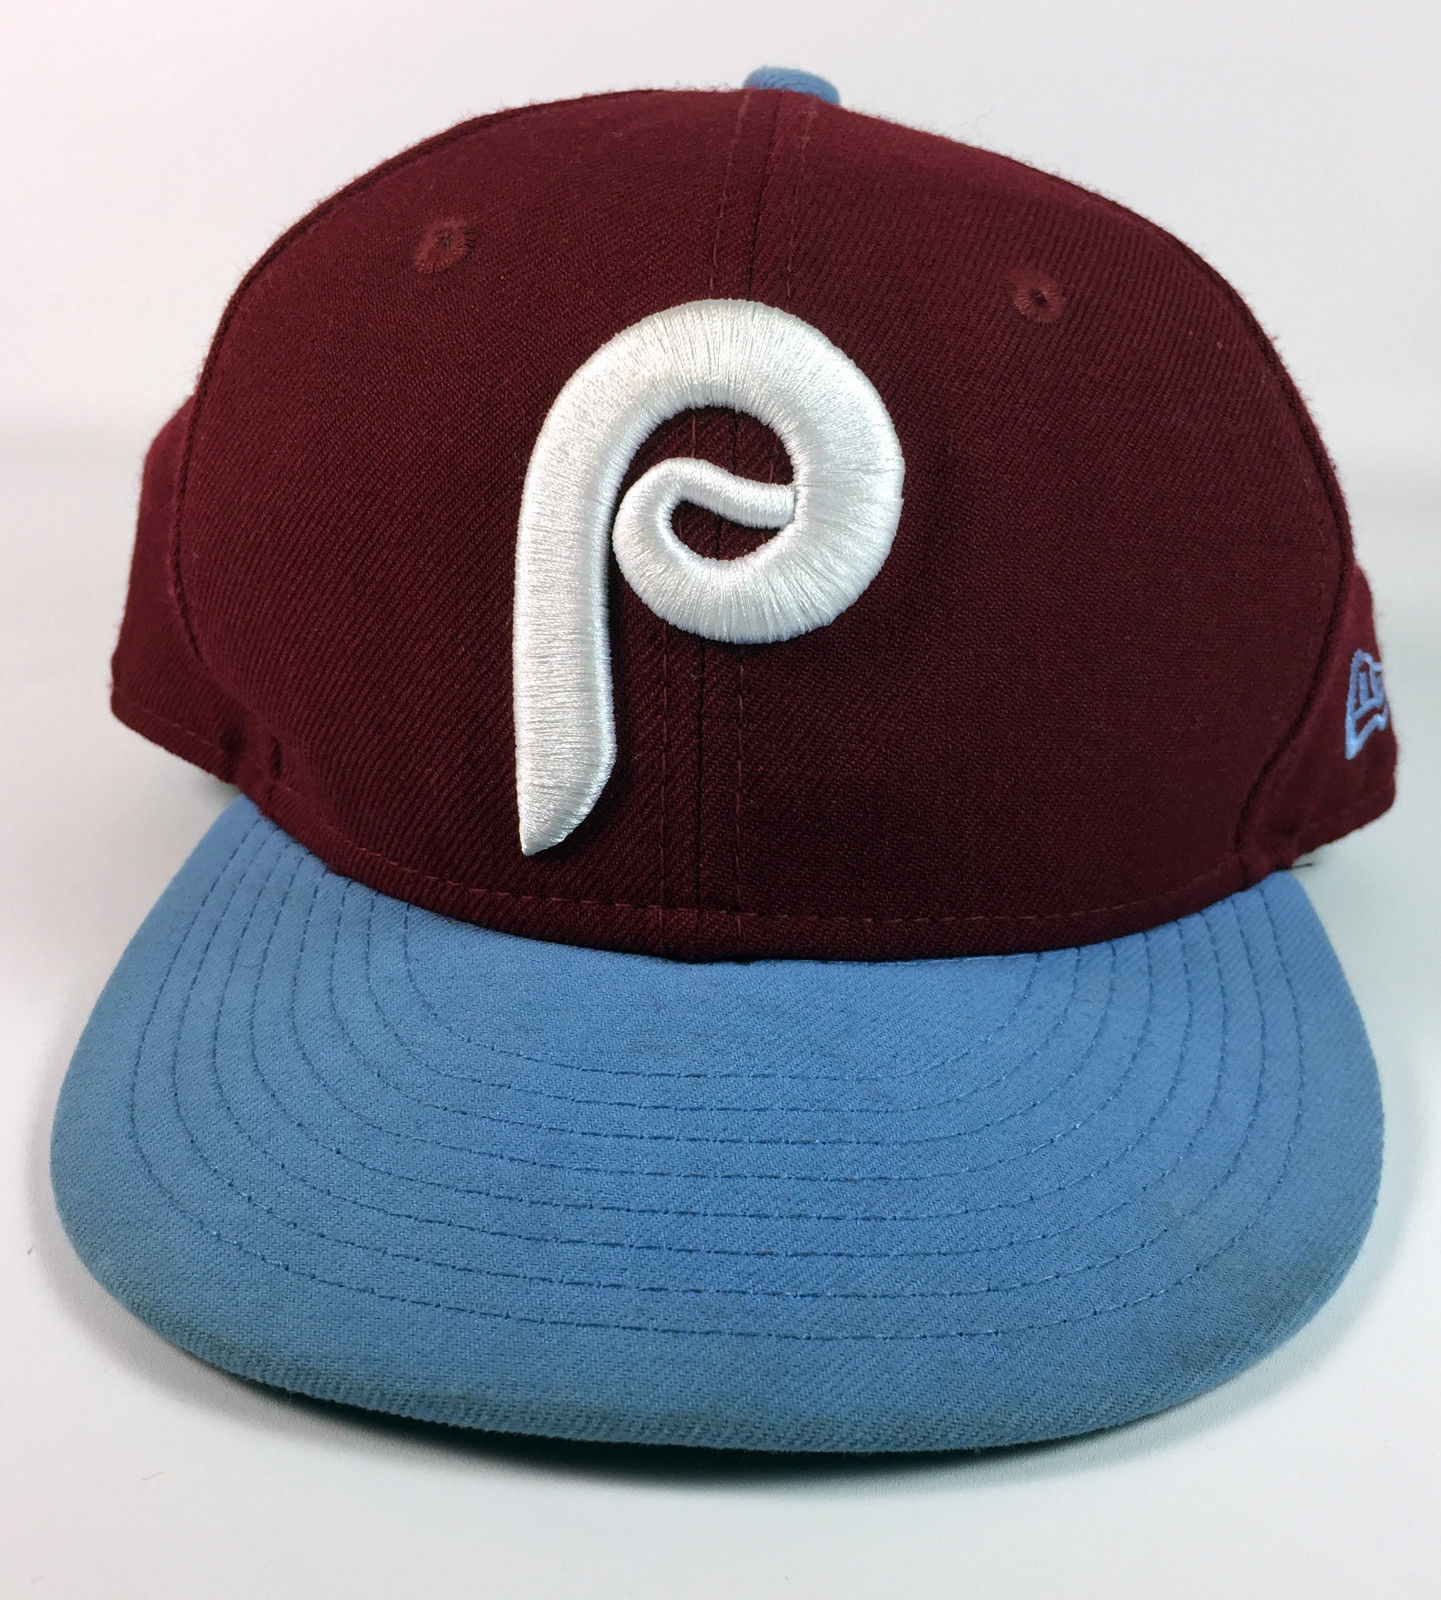 5a7c2cf4d65 Philadelphia Phillies New Era Snapback and 50 similar items